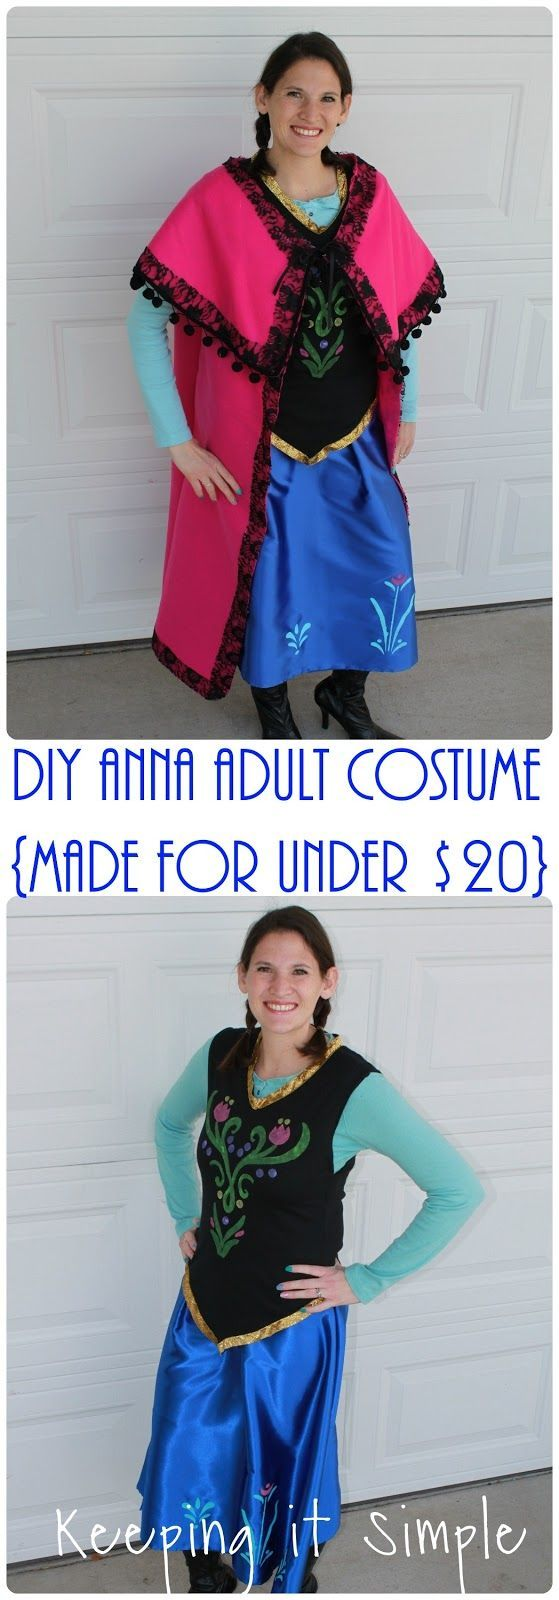 diy disney frozen anna adult costume made for less than 20 dollars - Halloween Anna Costume